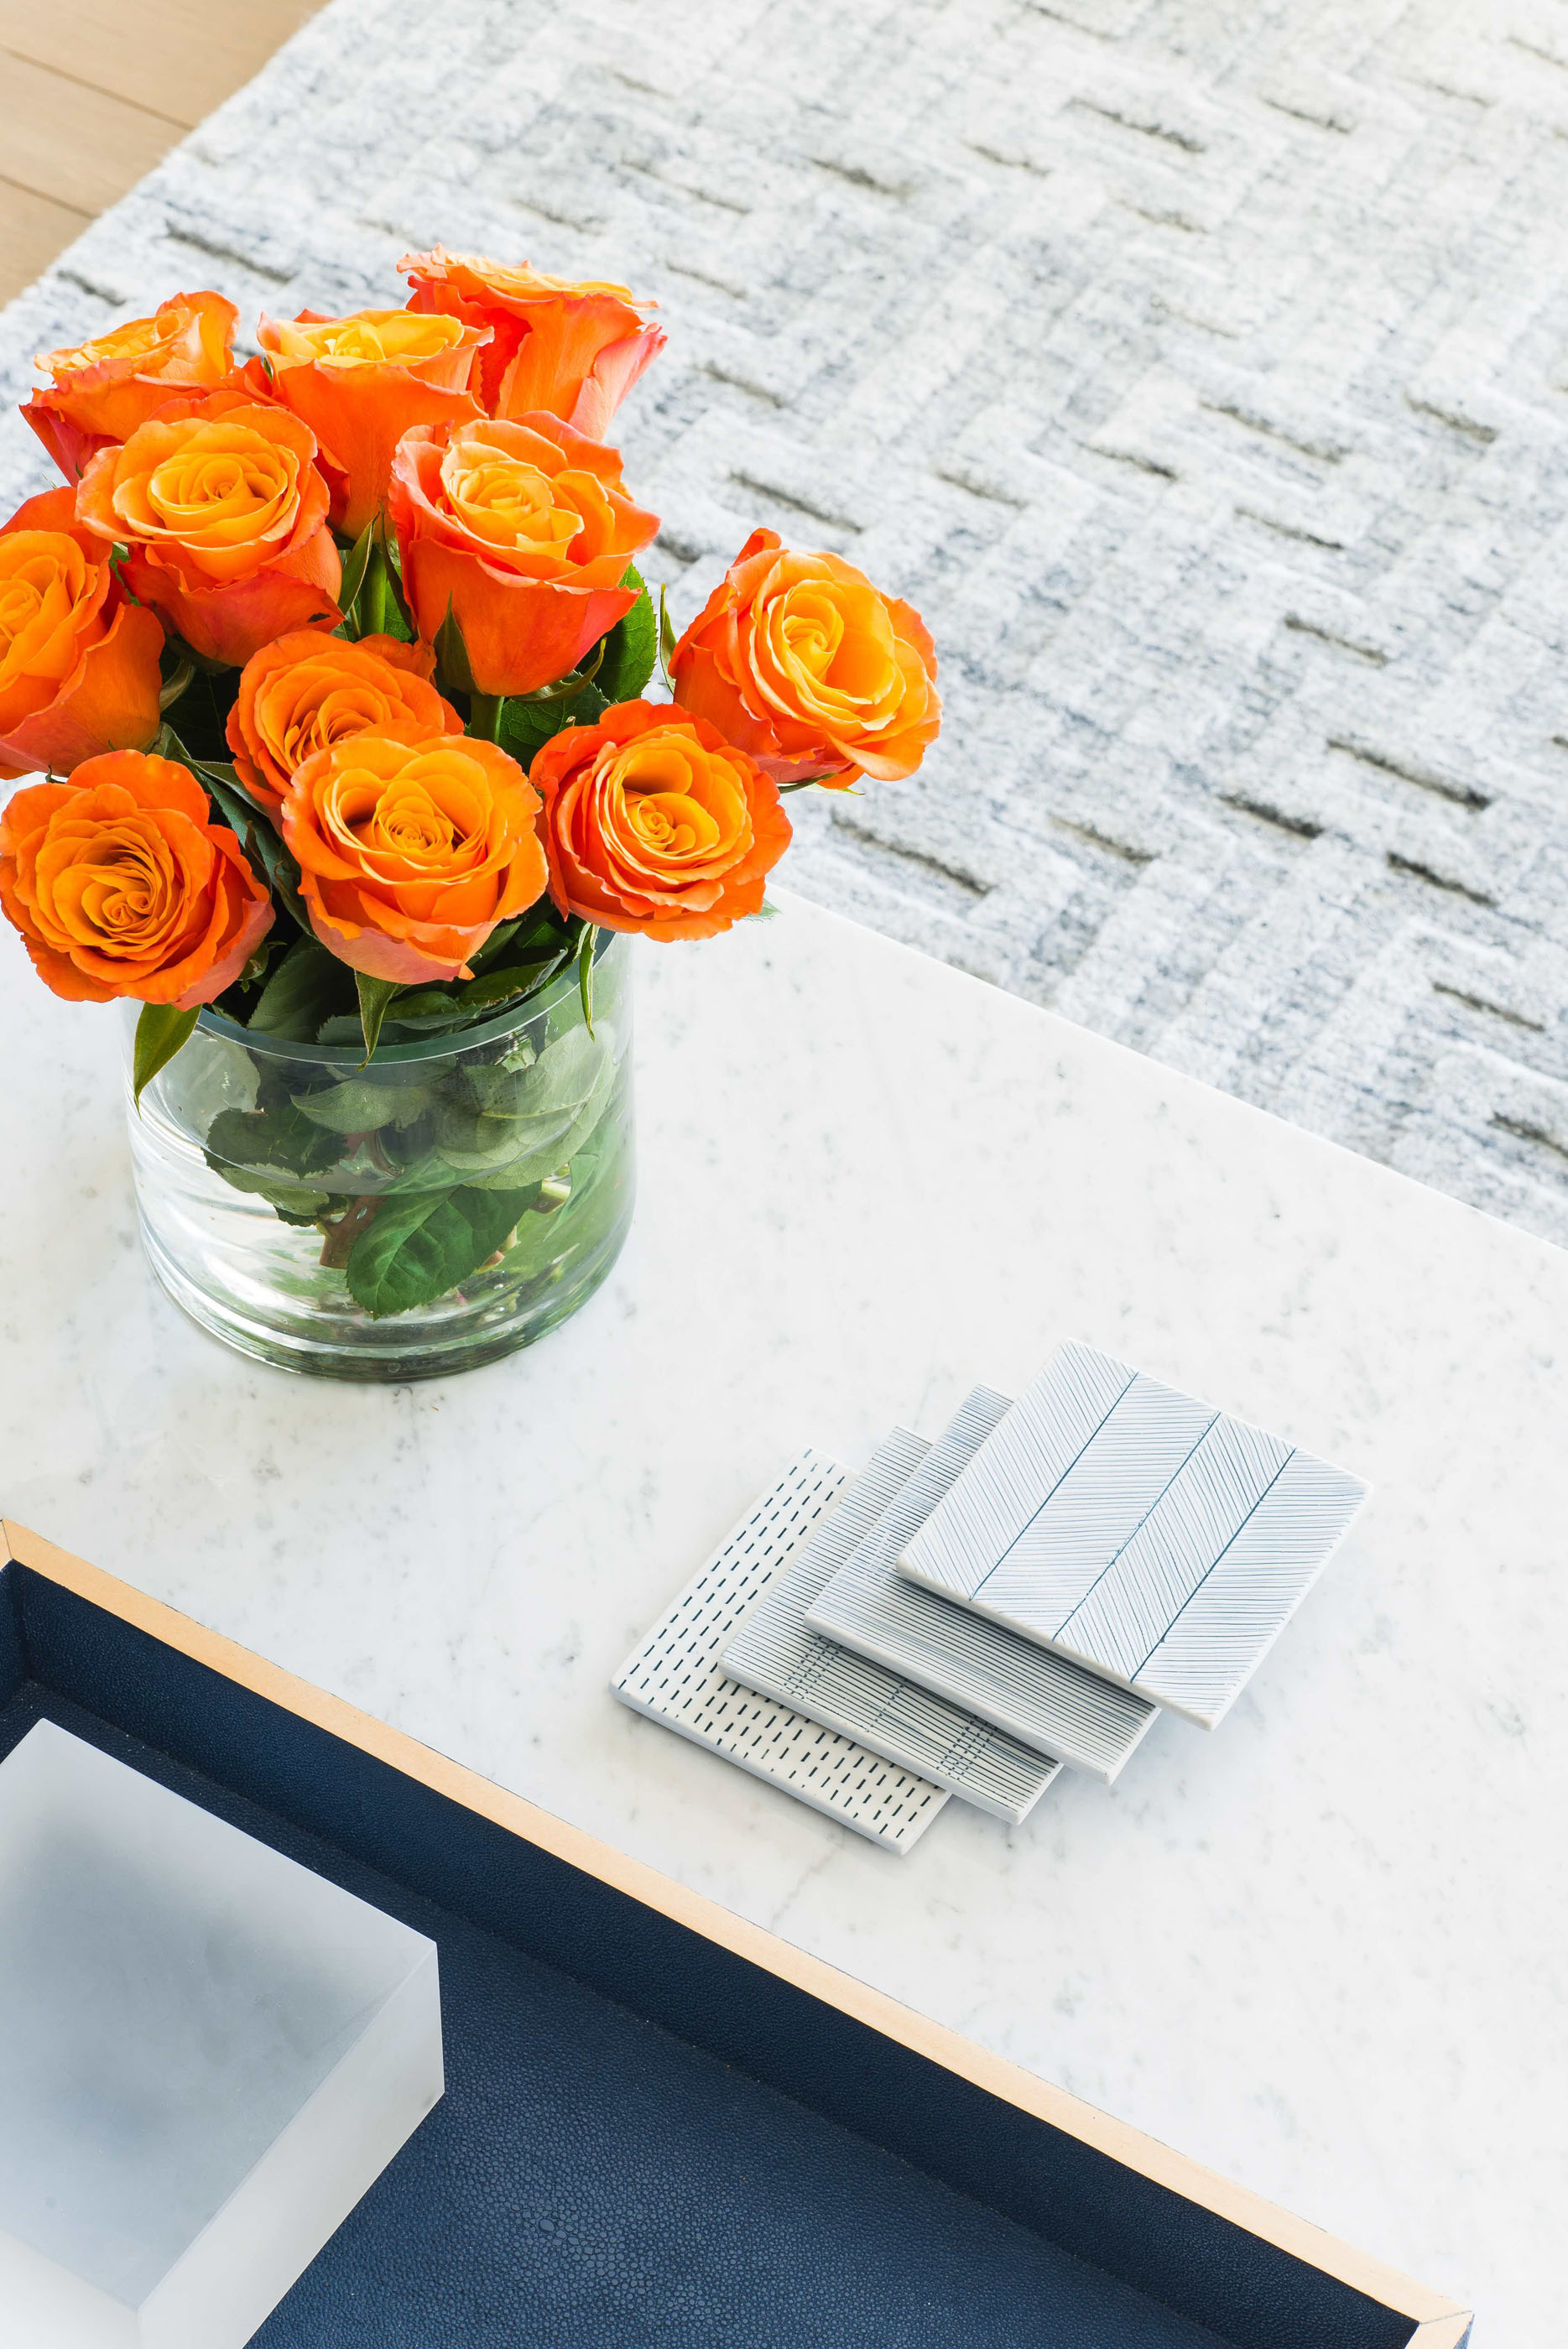 Tile Flowers Melissa Morgan Design